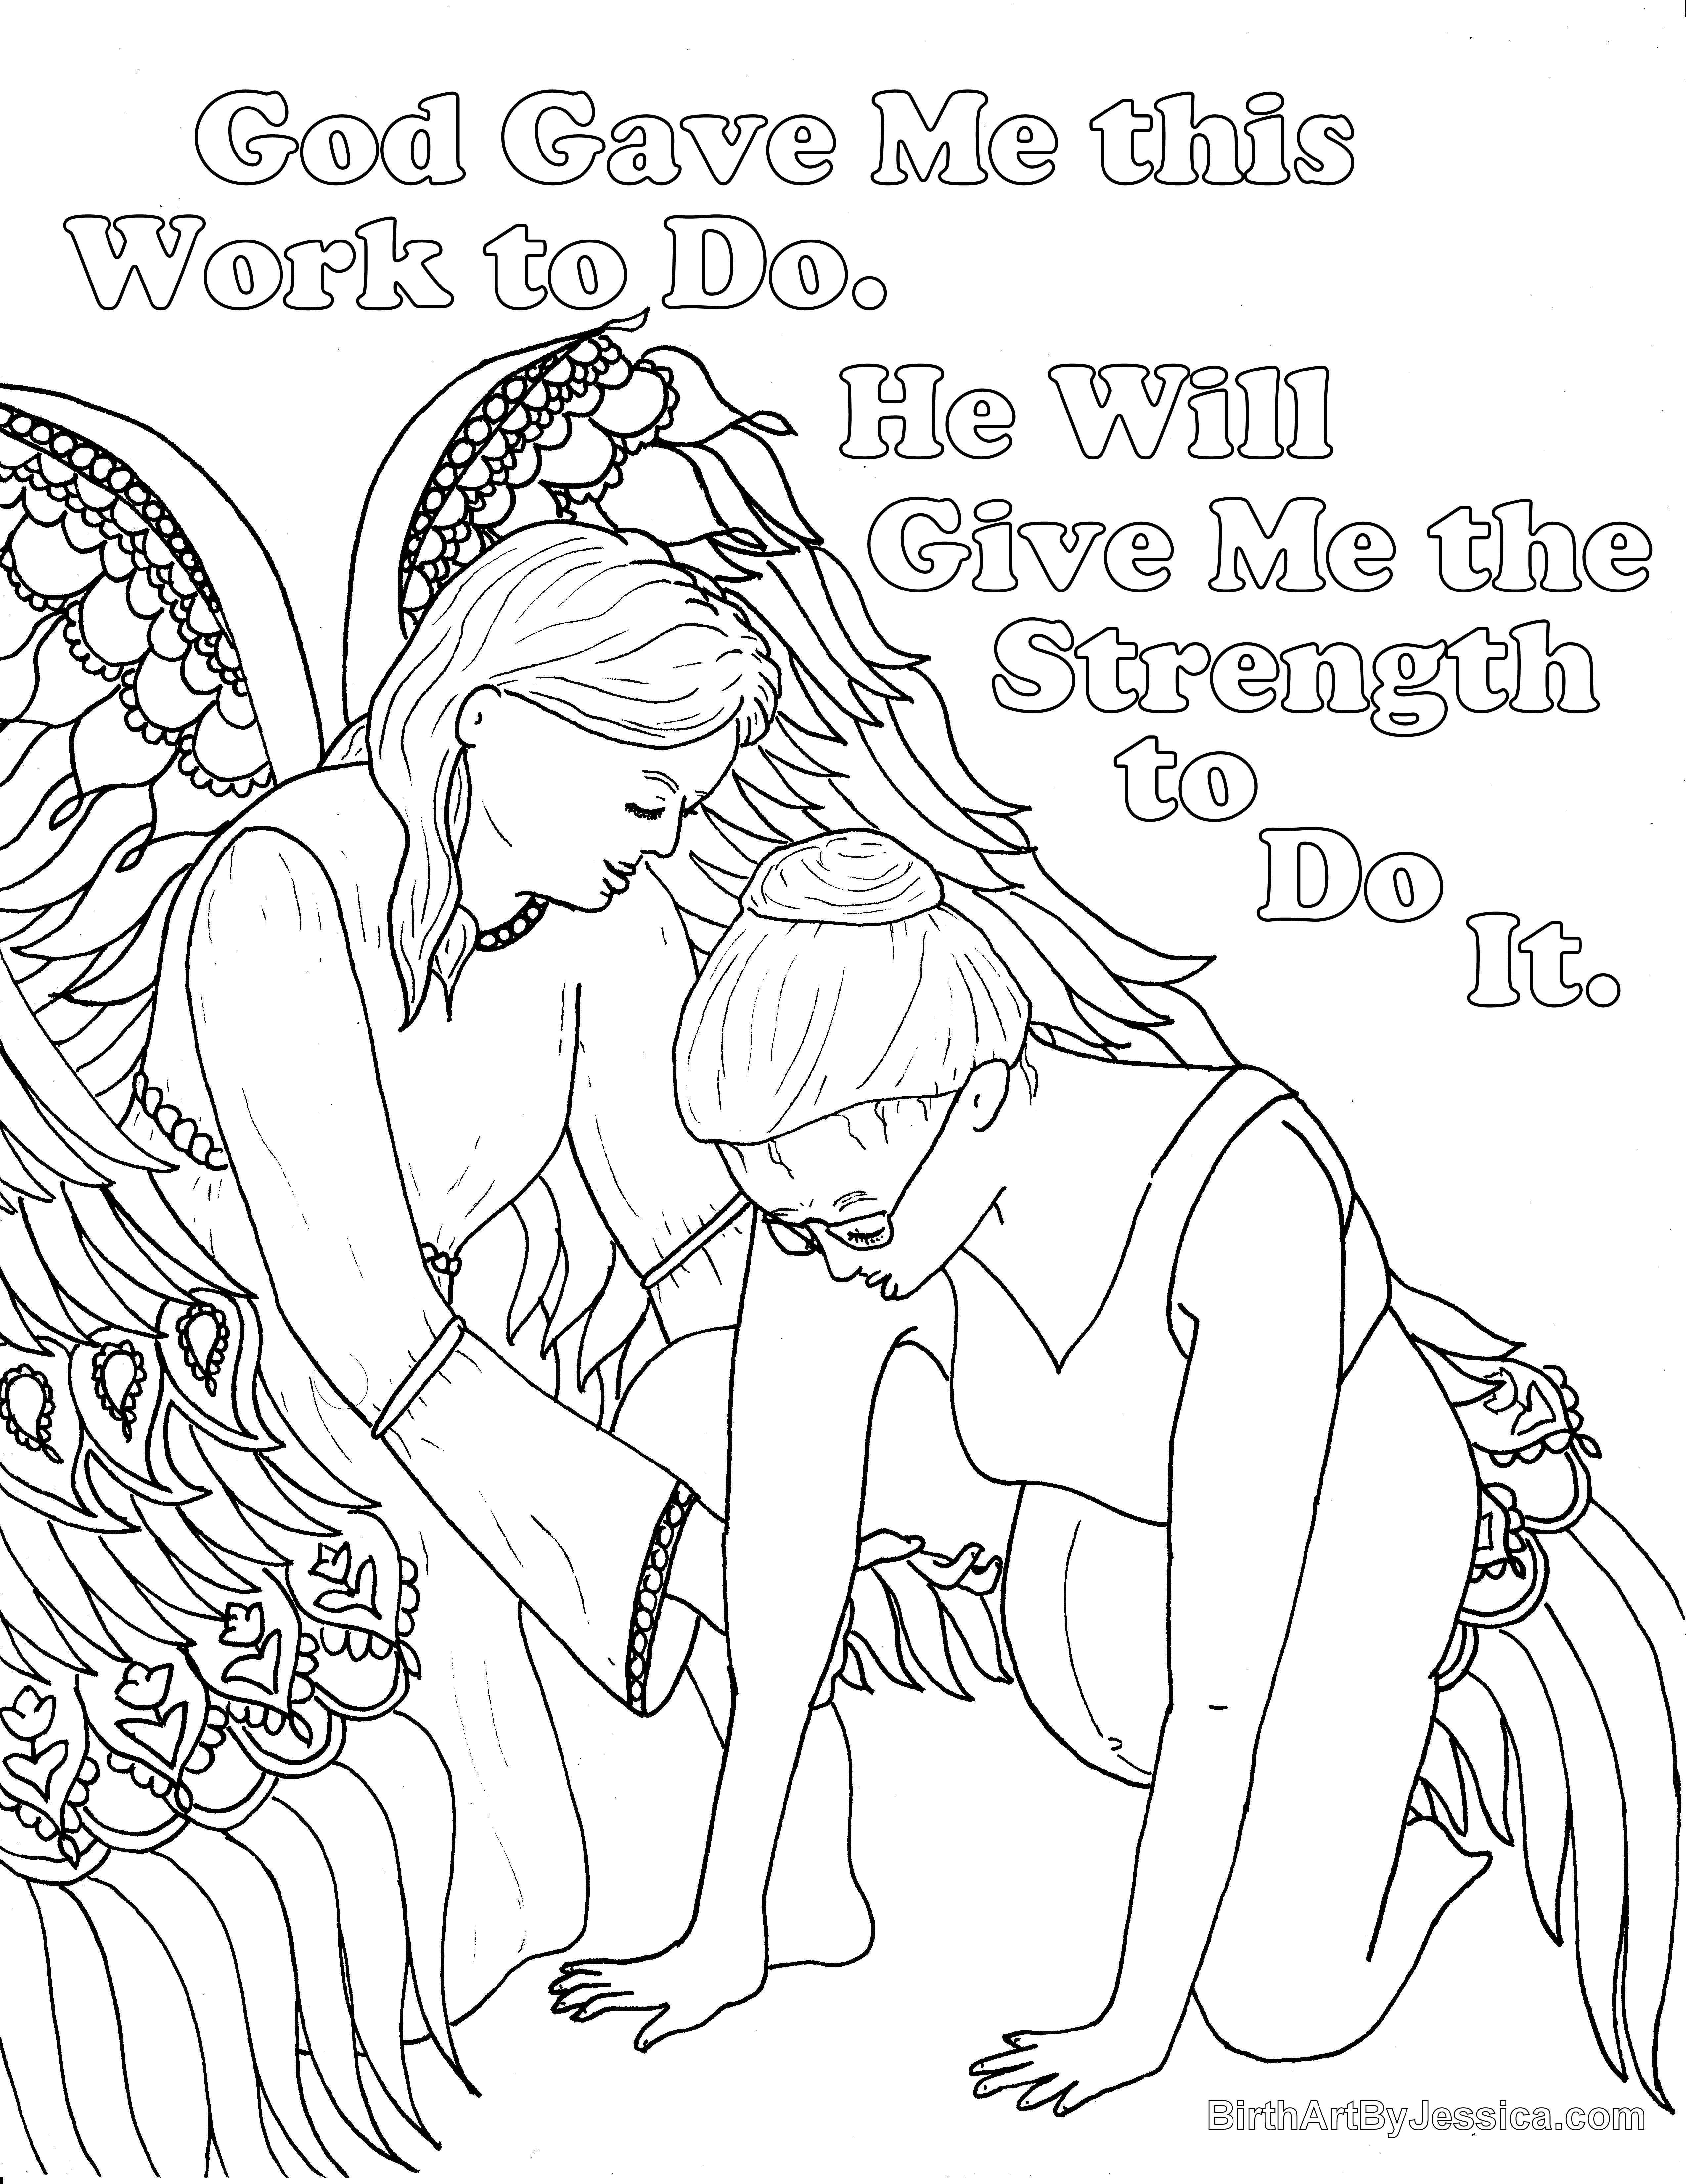 5100x6602 Birth Affirmation Coloring Page Free Printable! God Will Give Me